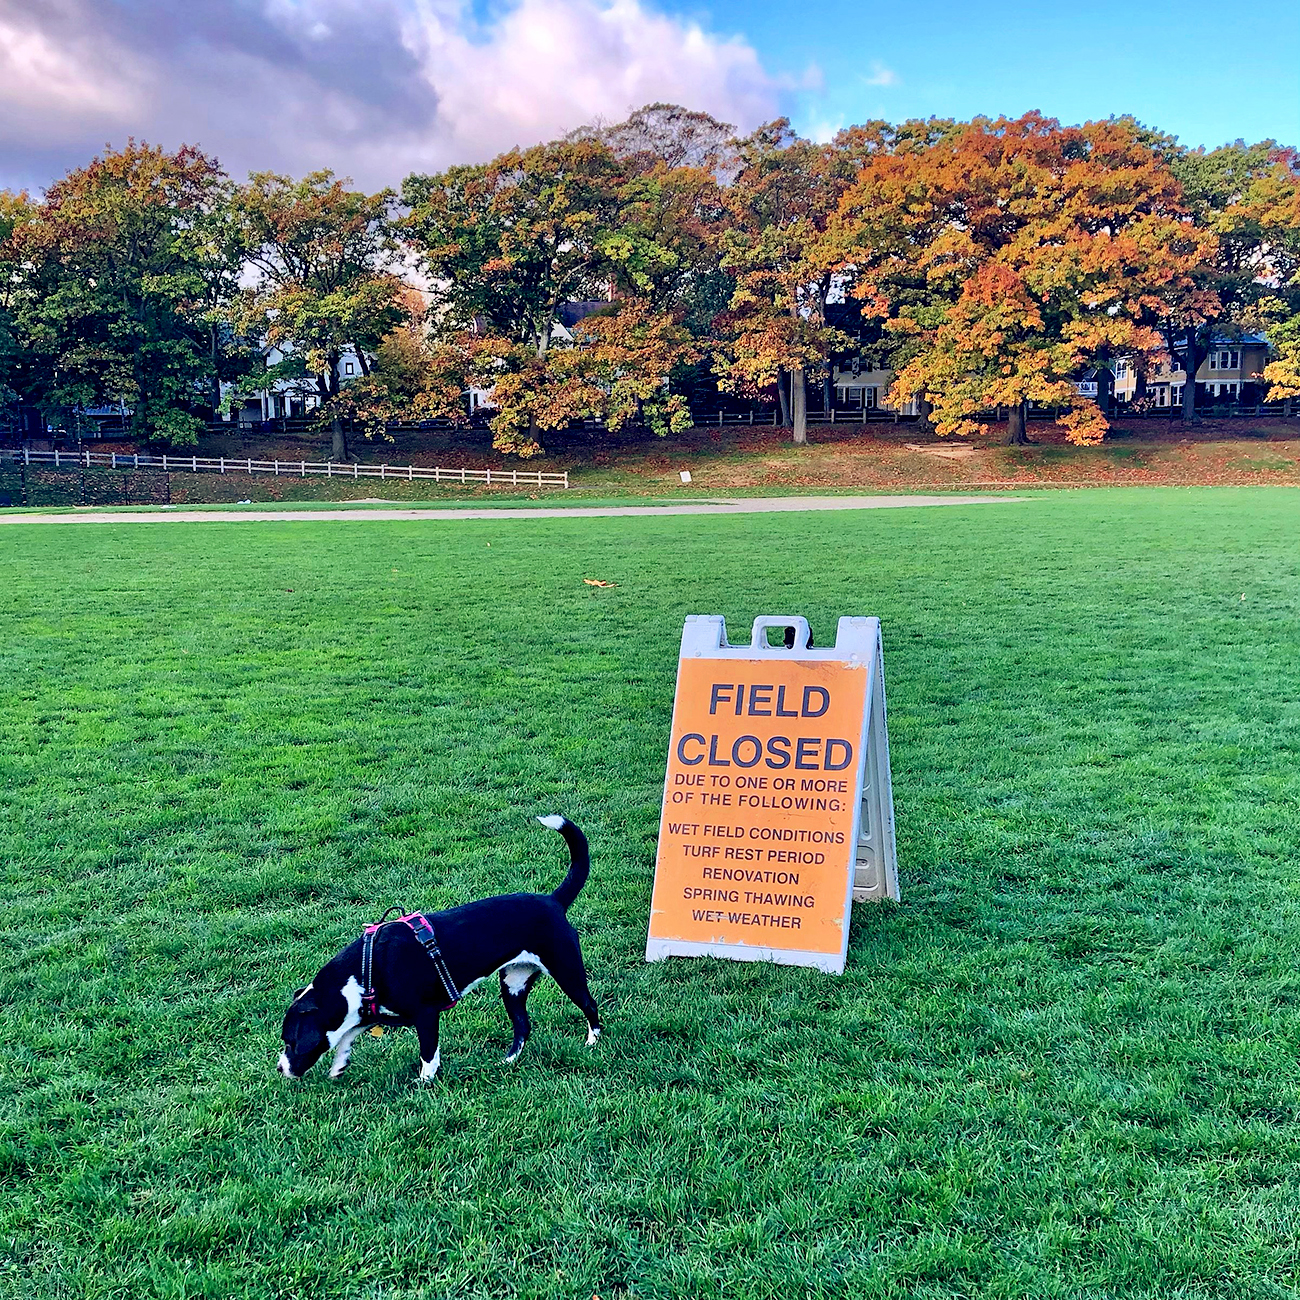 Black and white pup explores closed soccer field